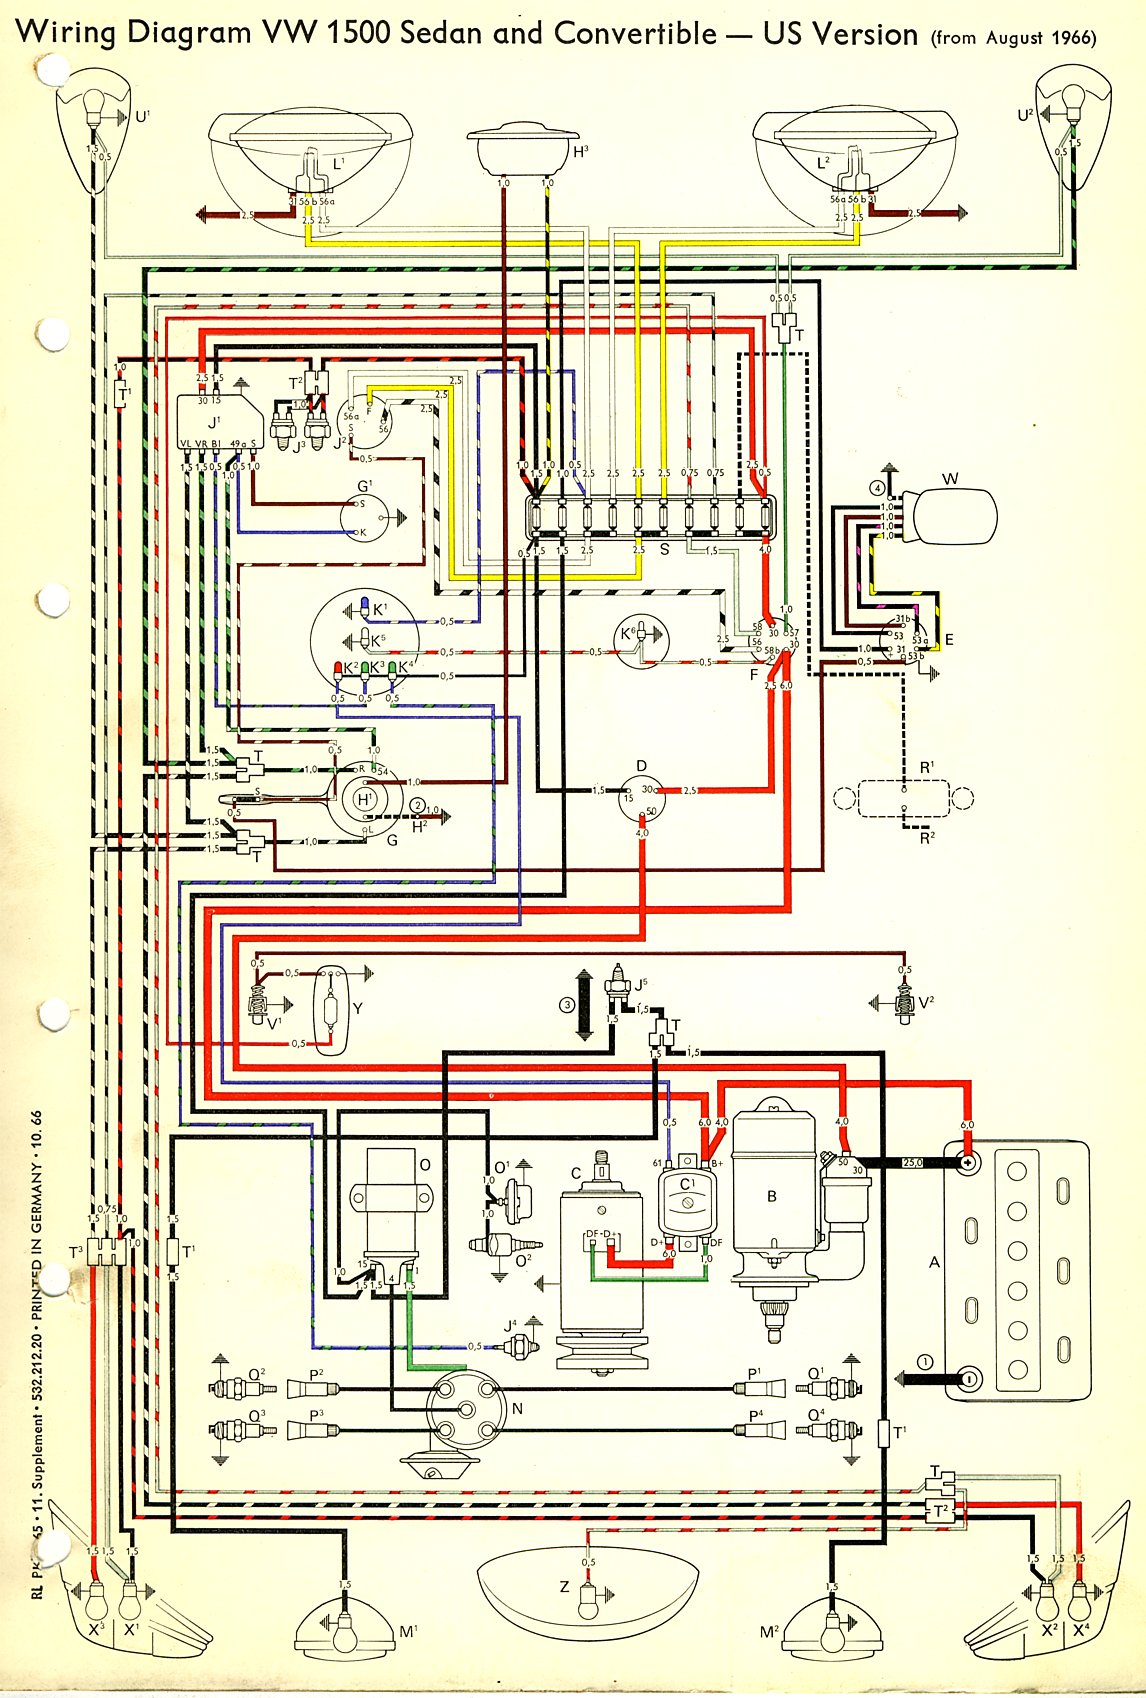 1966 Vw Beetle Wiring Diagram Schematics Diagrams Polaris Sportsman Thesamba Com Type 1 Rh Volkswagen